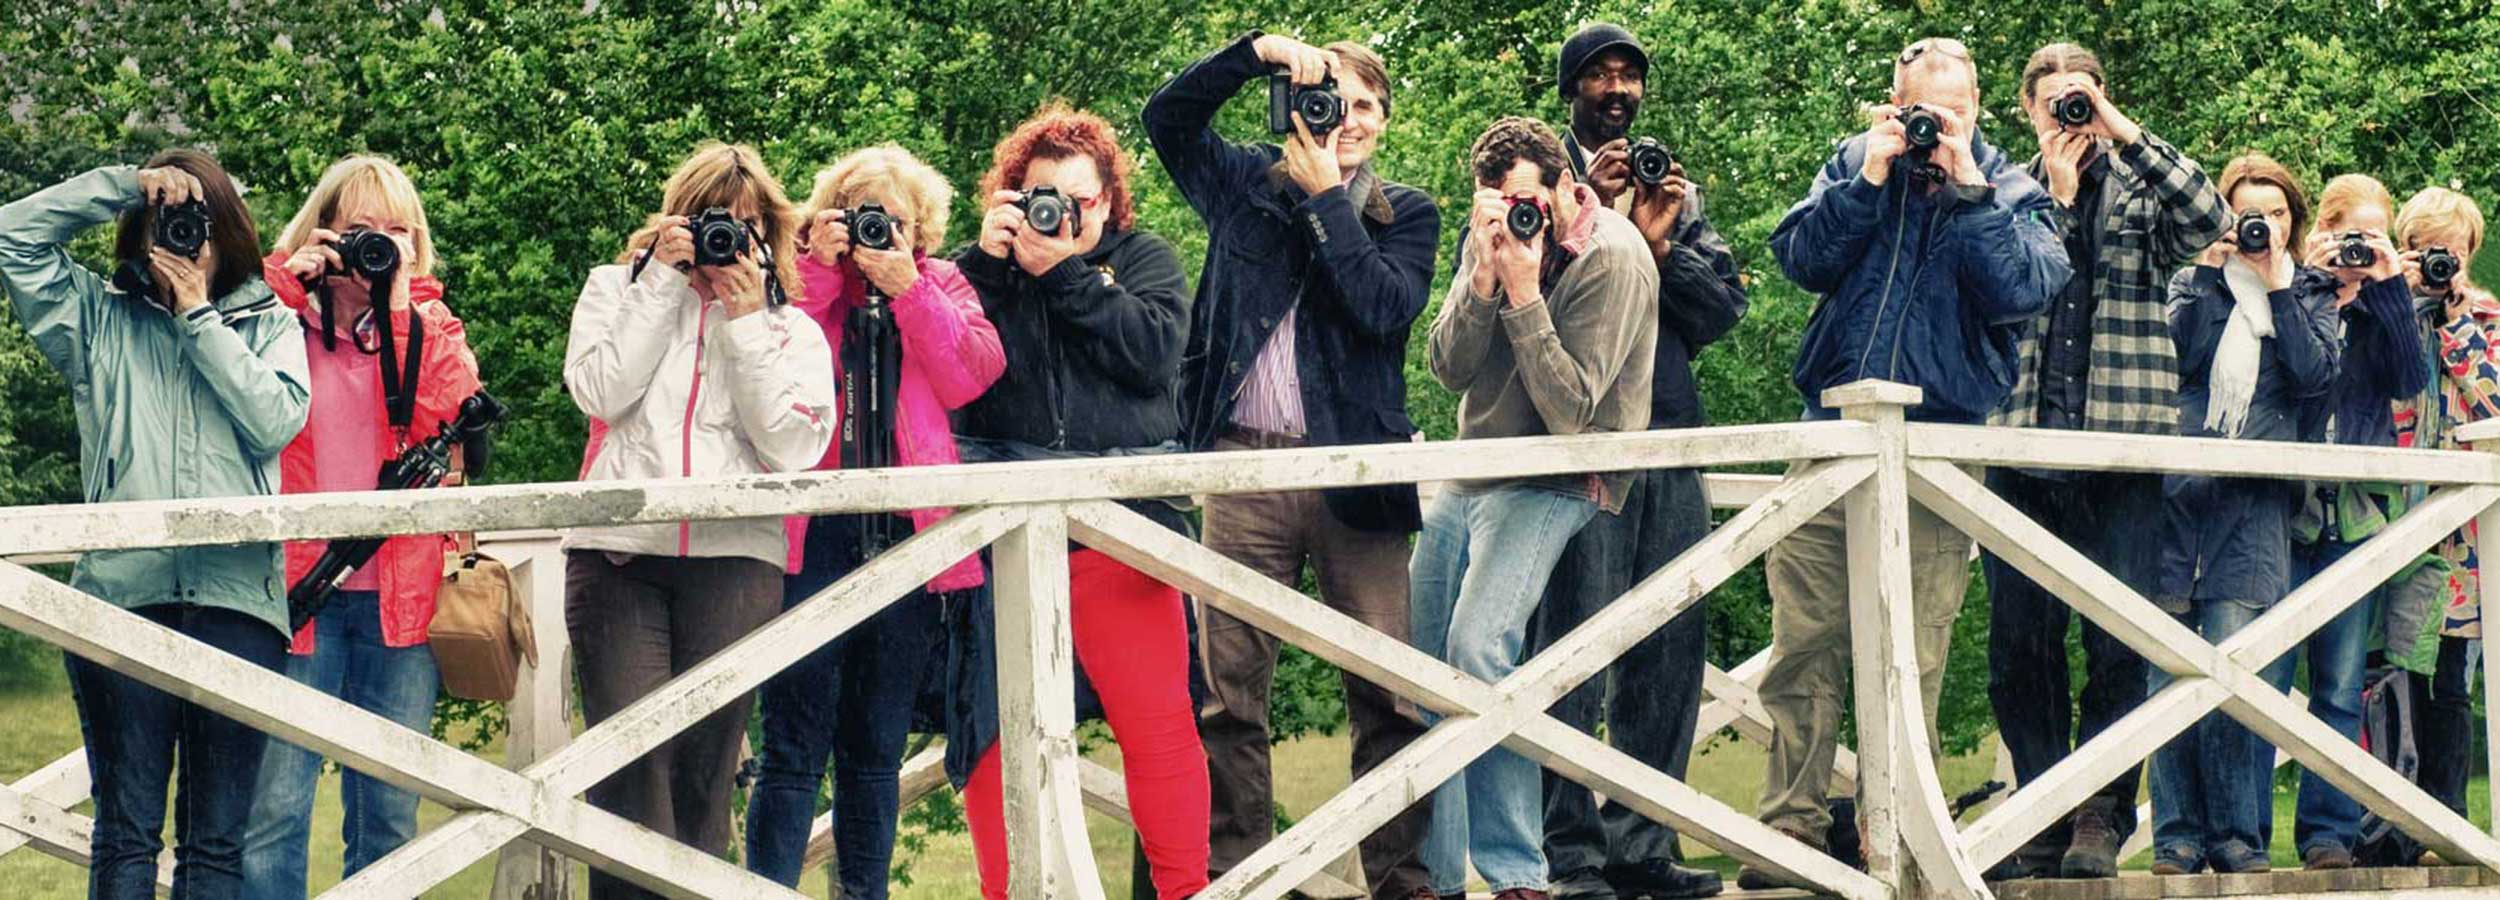 photography-courses-imber-court-1